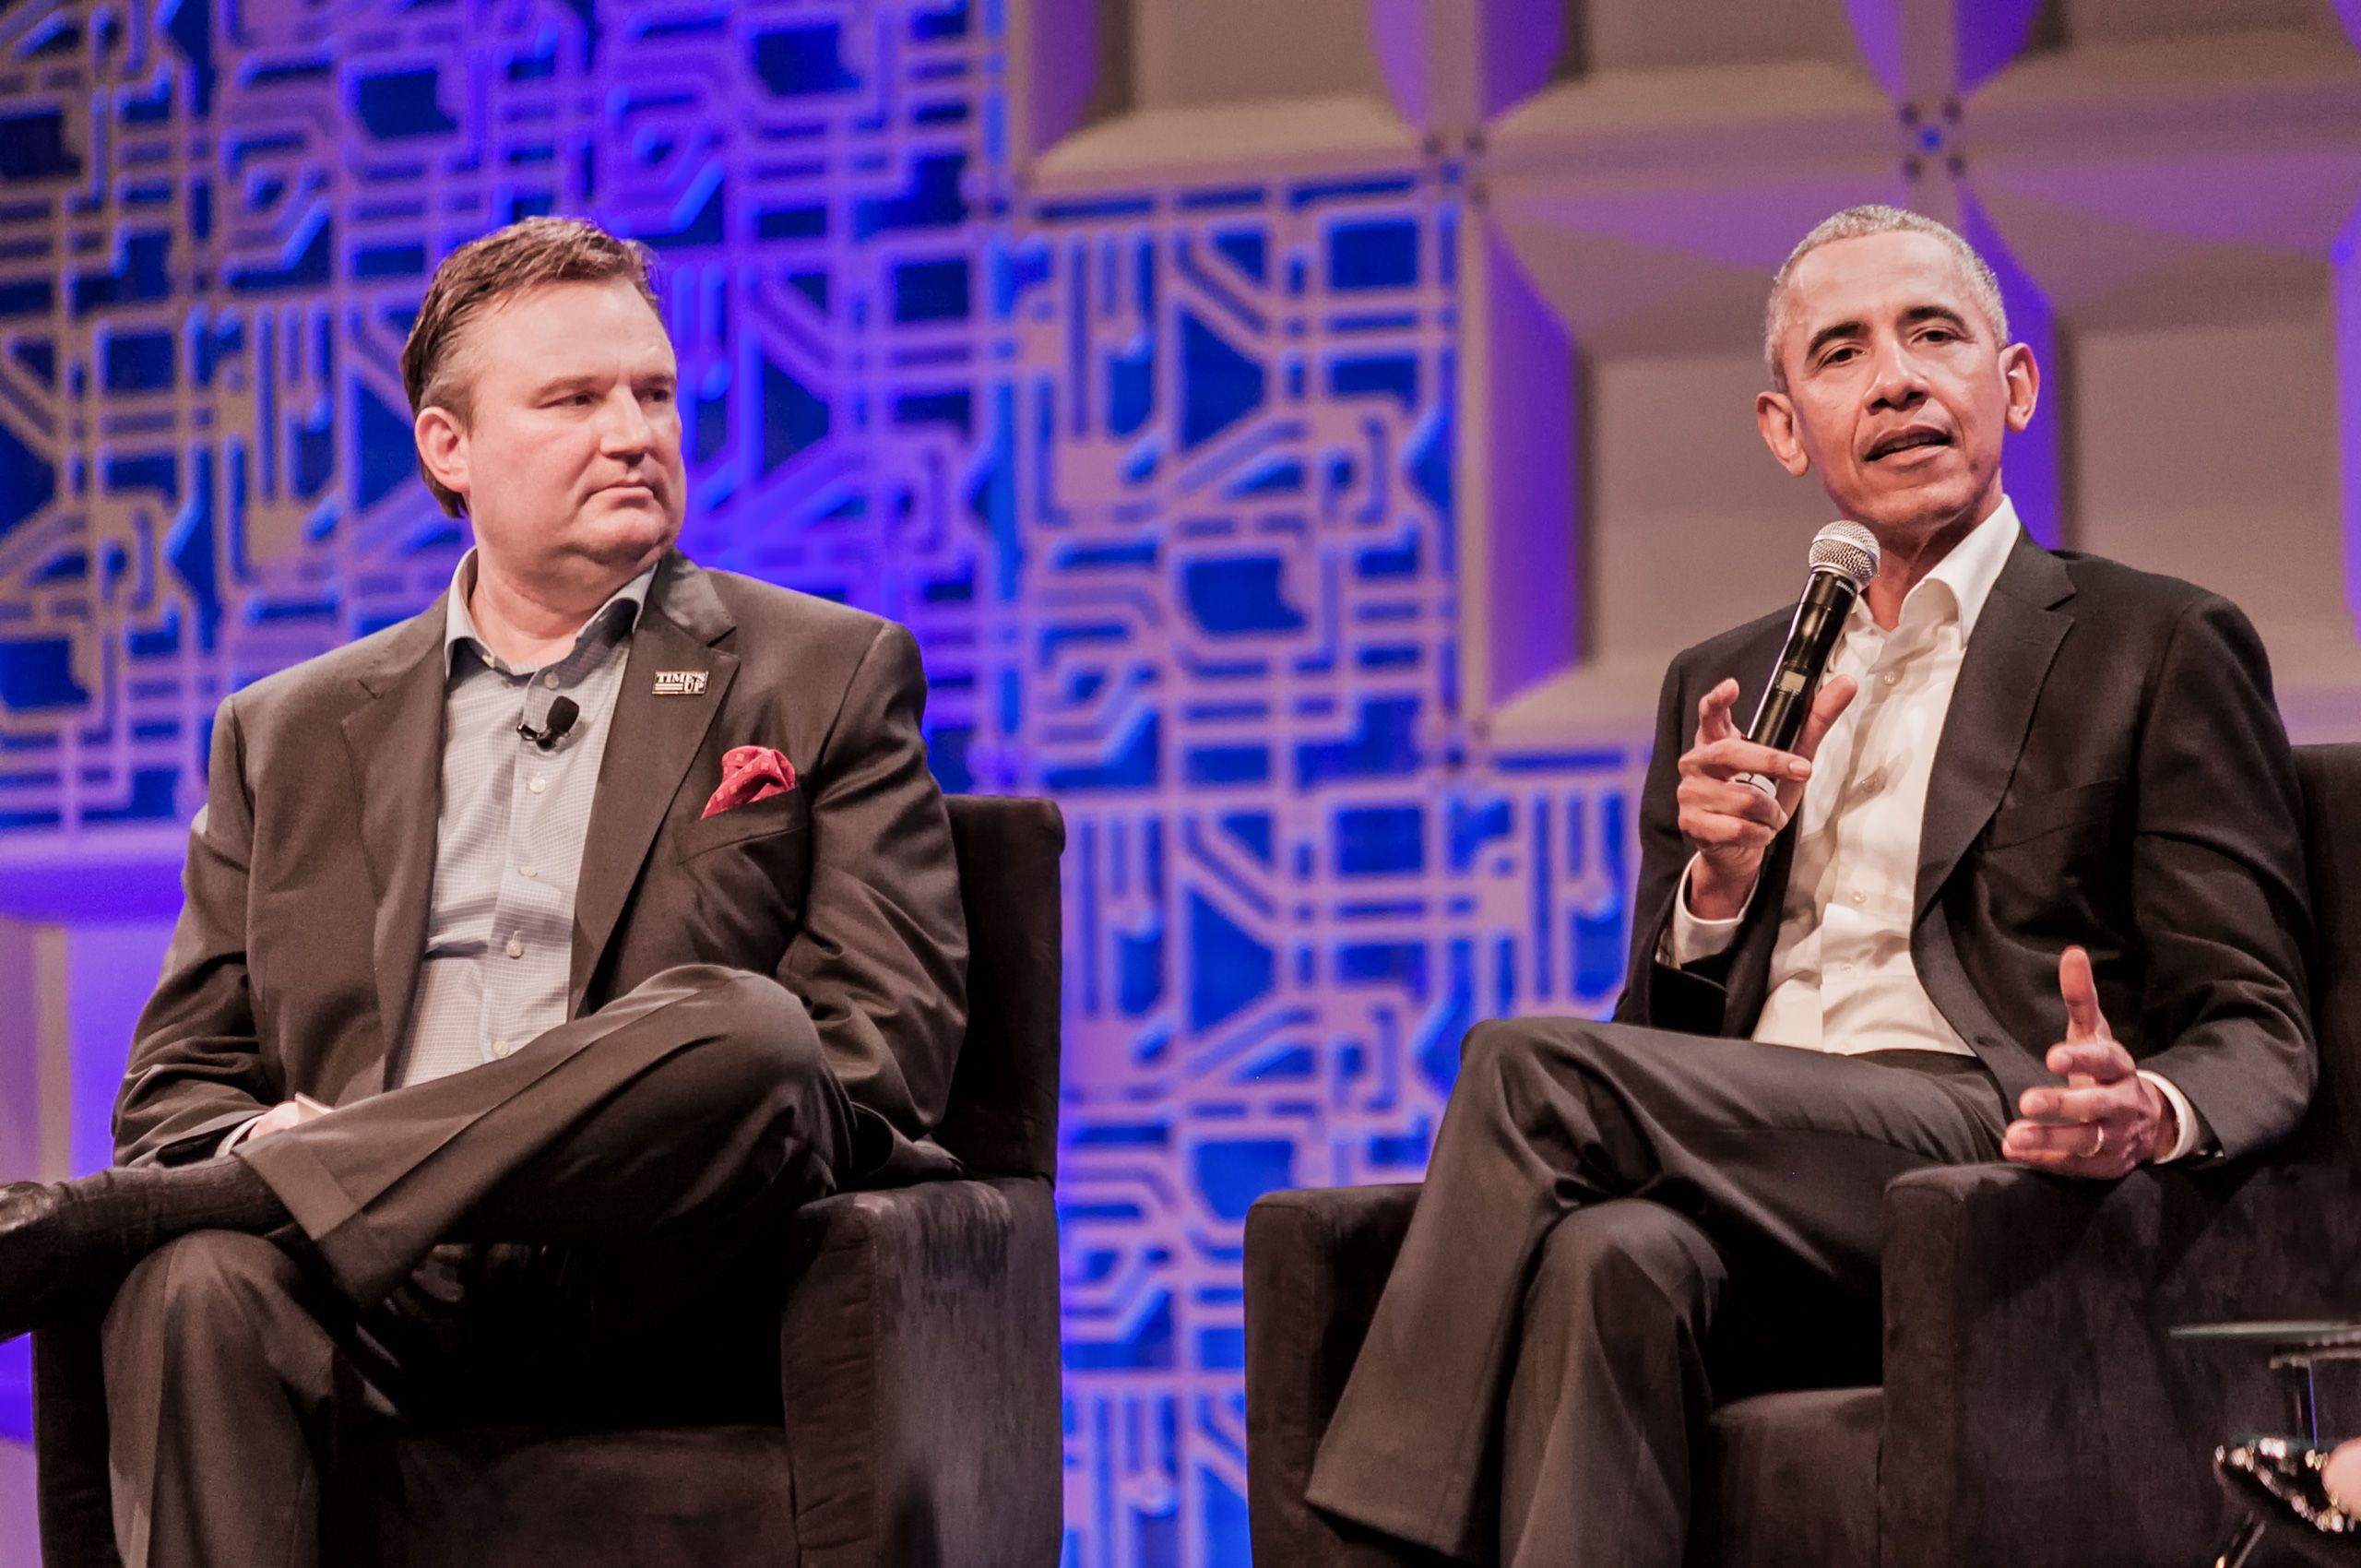 Obama's session at MIT's Sloan Sports Analytics Conference